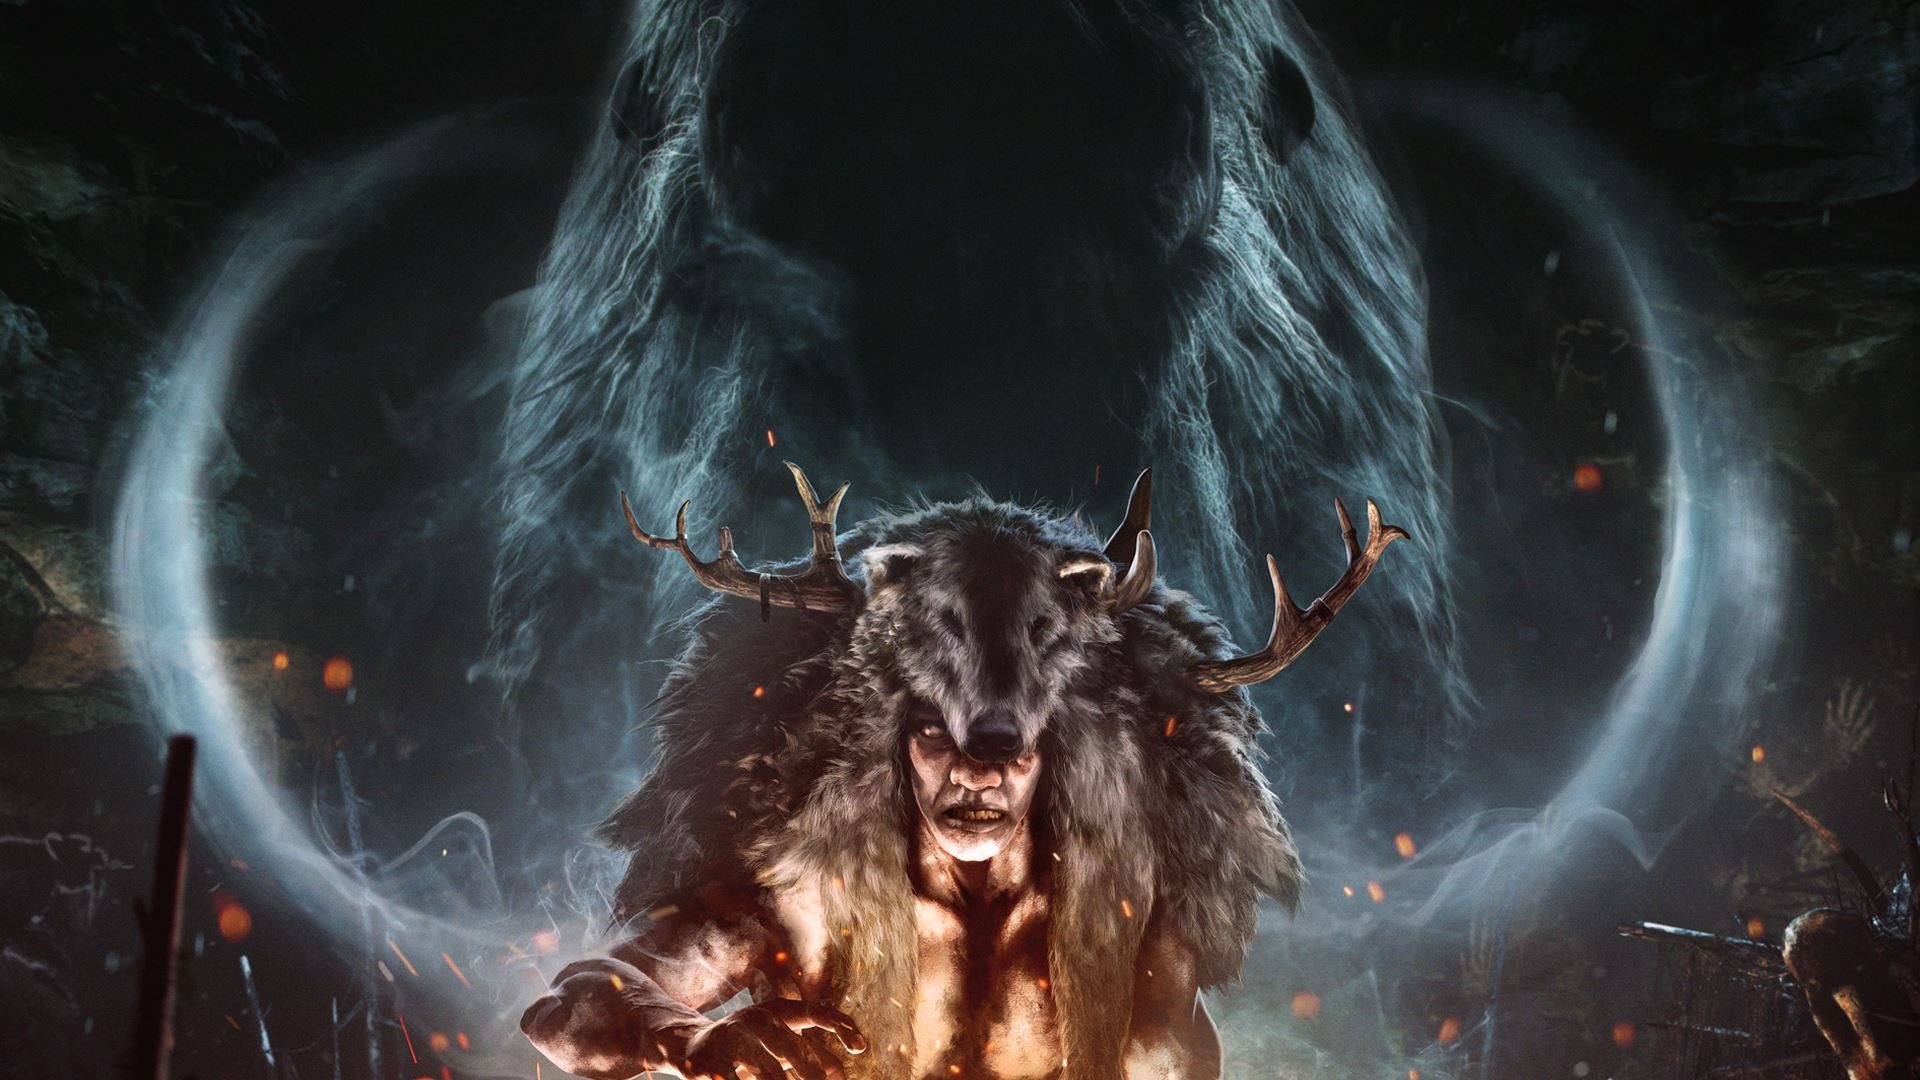 Far Cry Primal Hd Wallpaper Background Image 1920x1080 Id 680365 Wallpaper Abyss